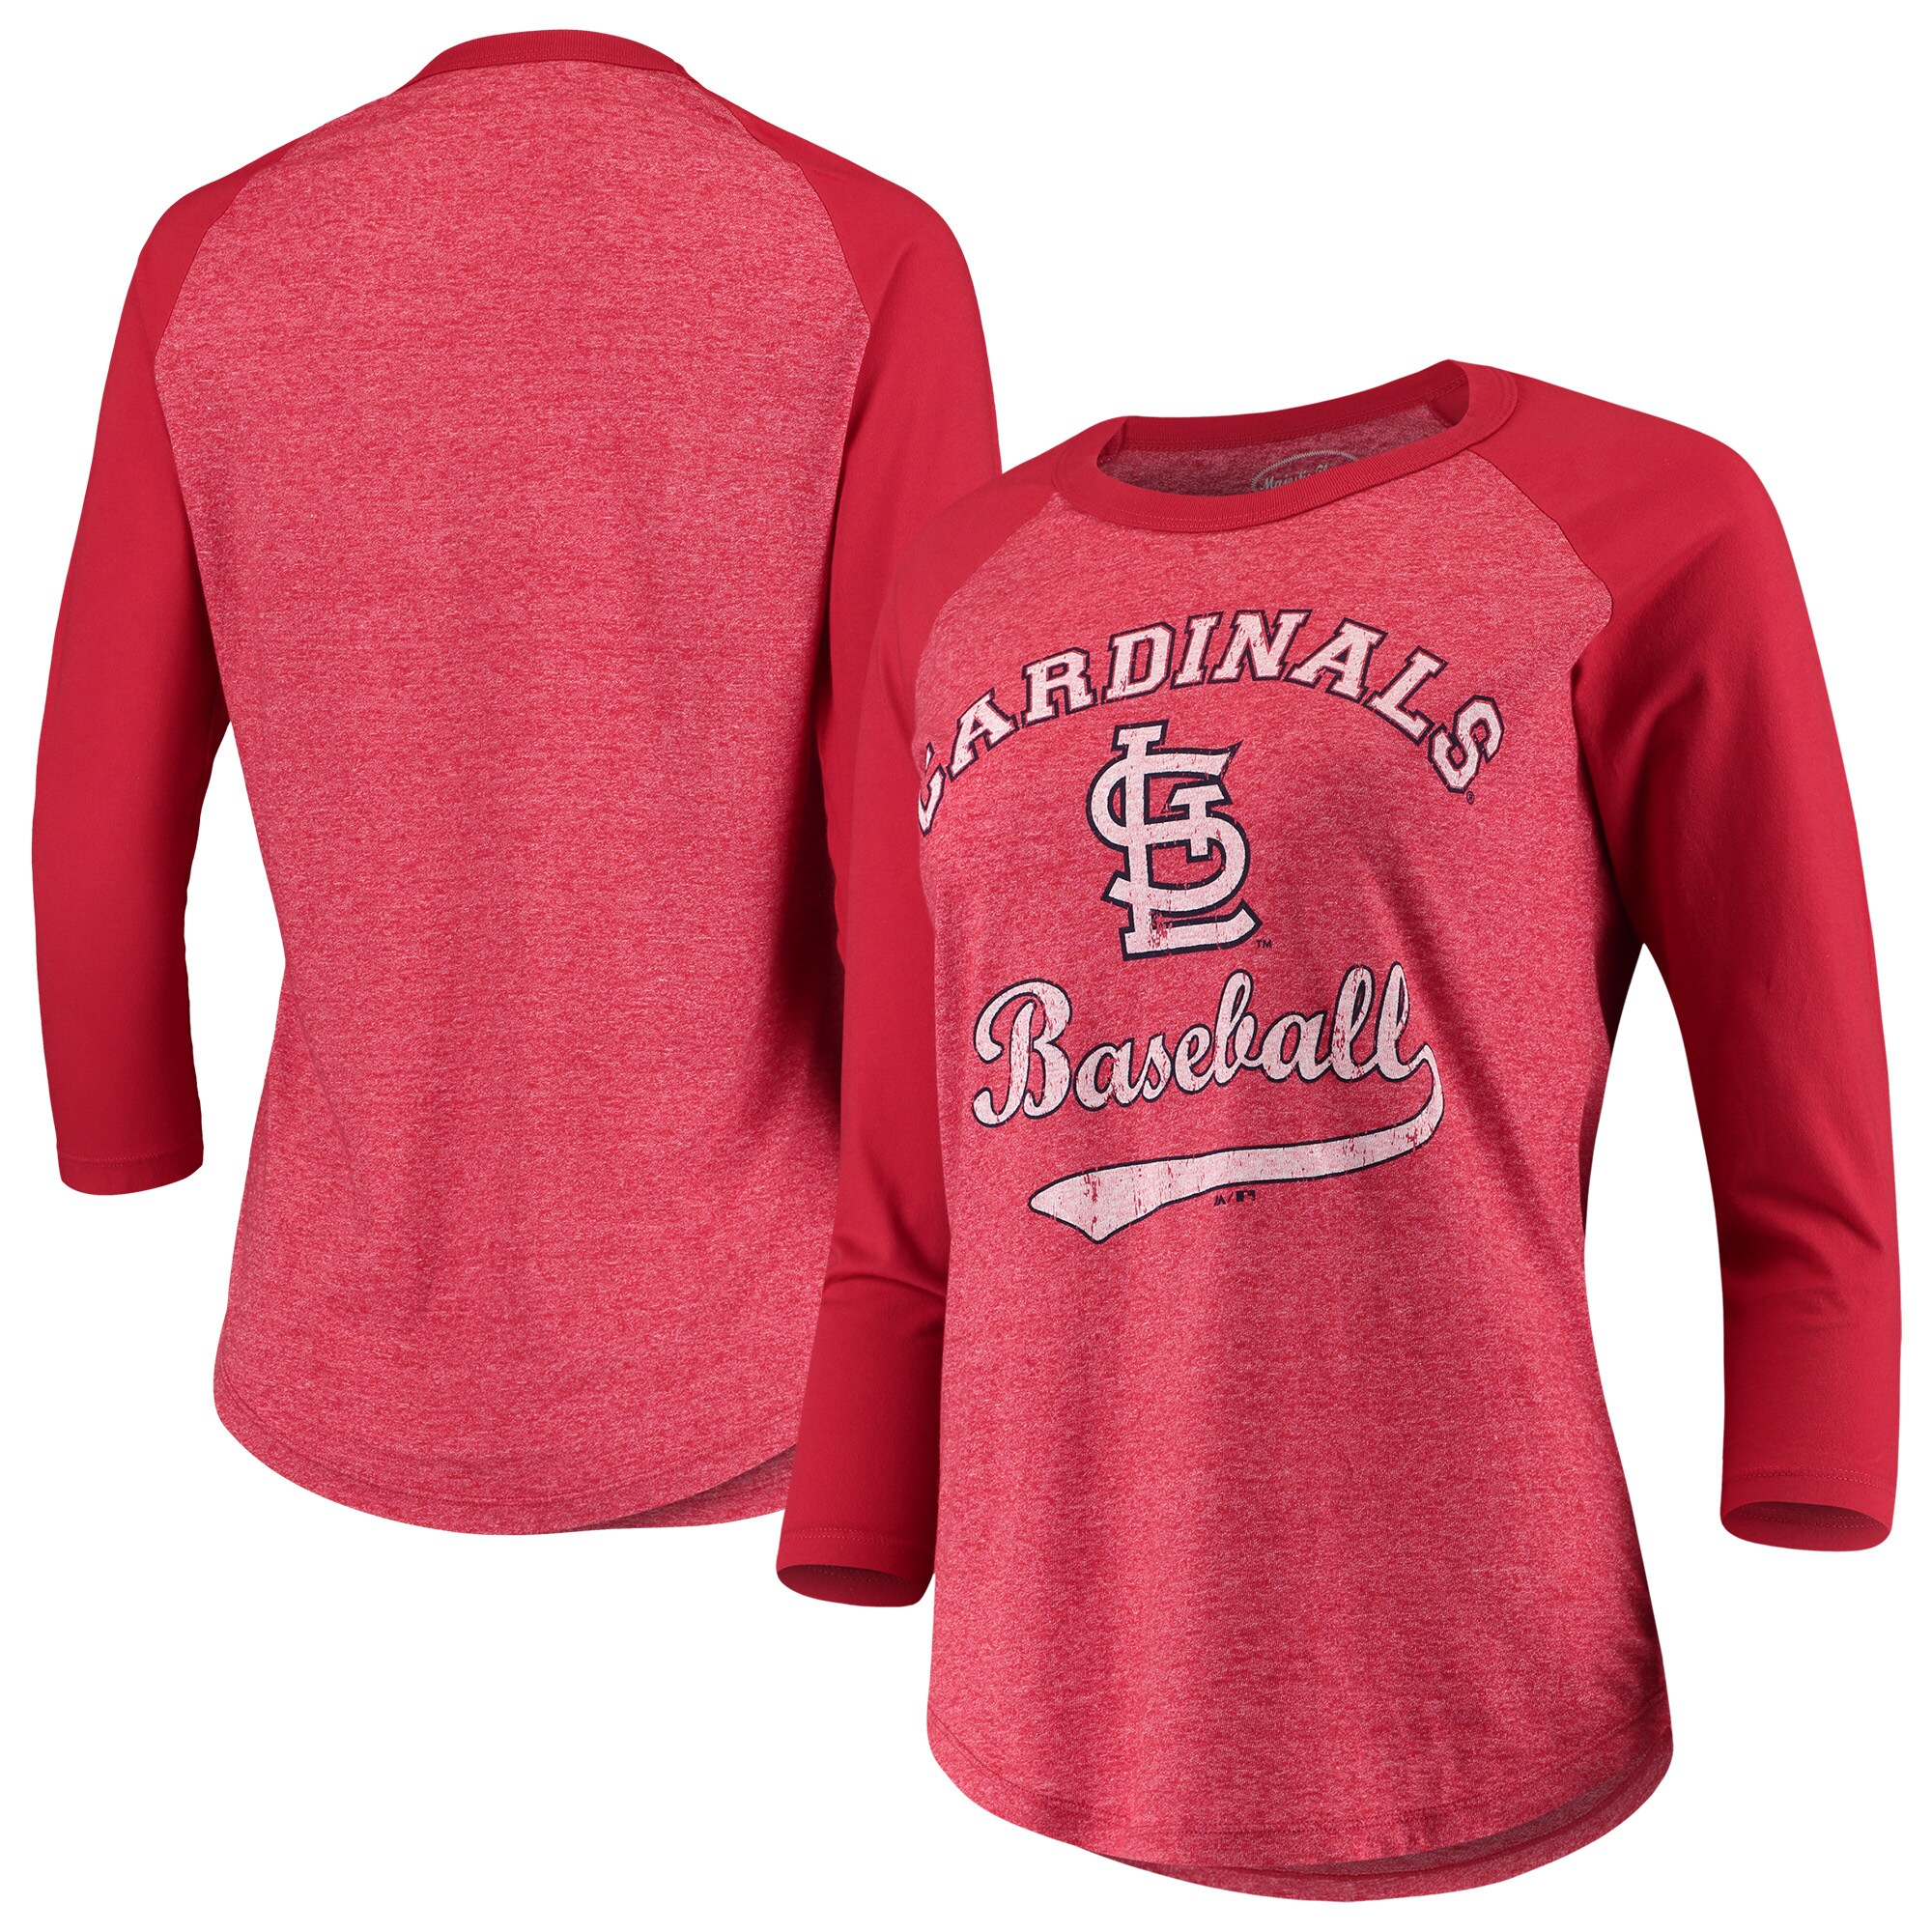 St. Louis Cardinals Majestic Threads Women's Team Baseball Three-Quarter Raglan Sleeve Tri-Blend T-Shirt - Red